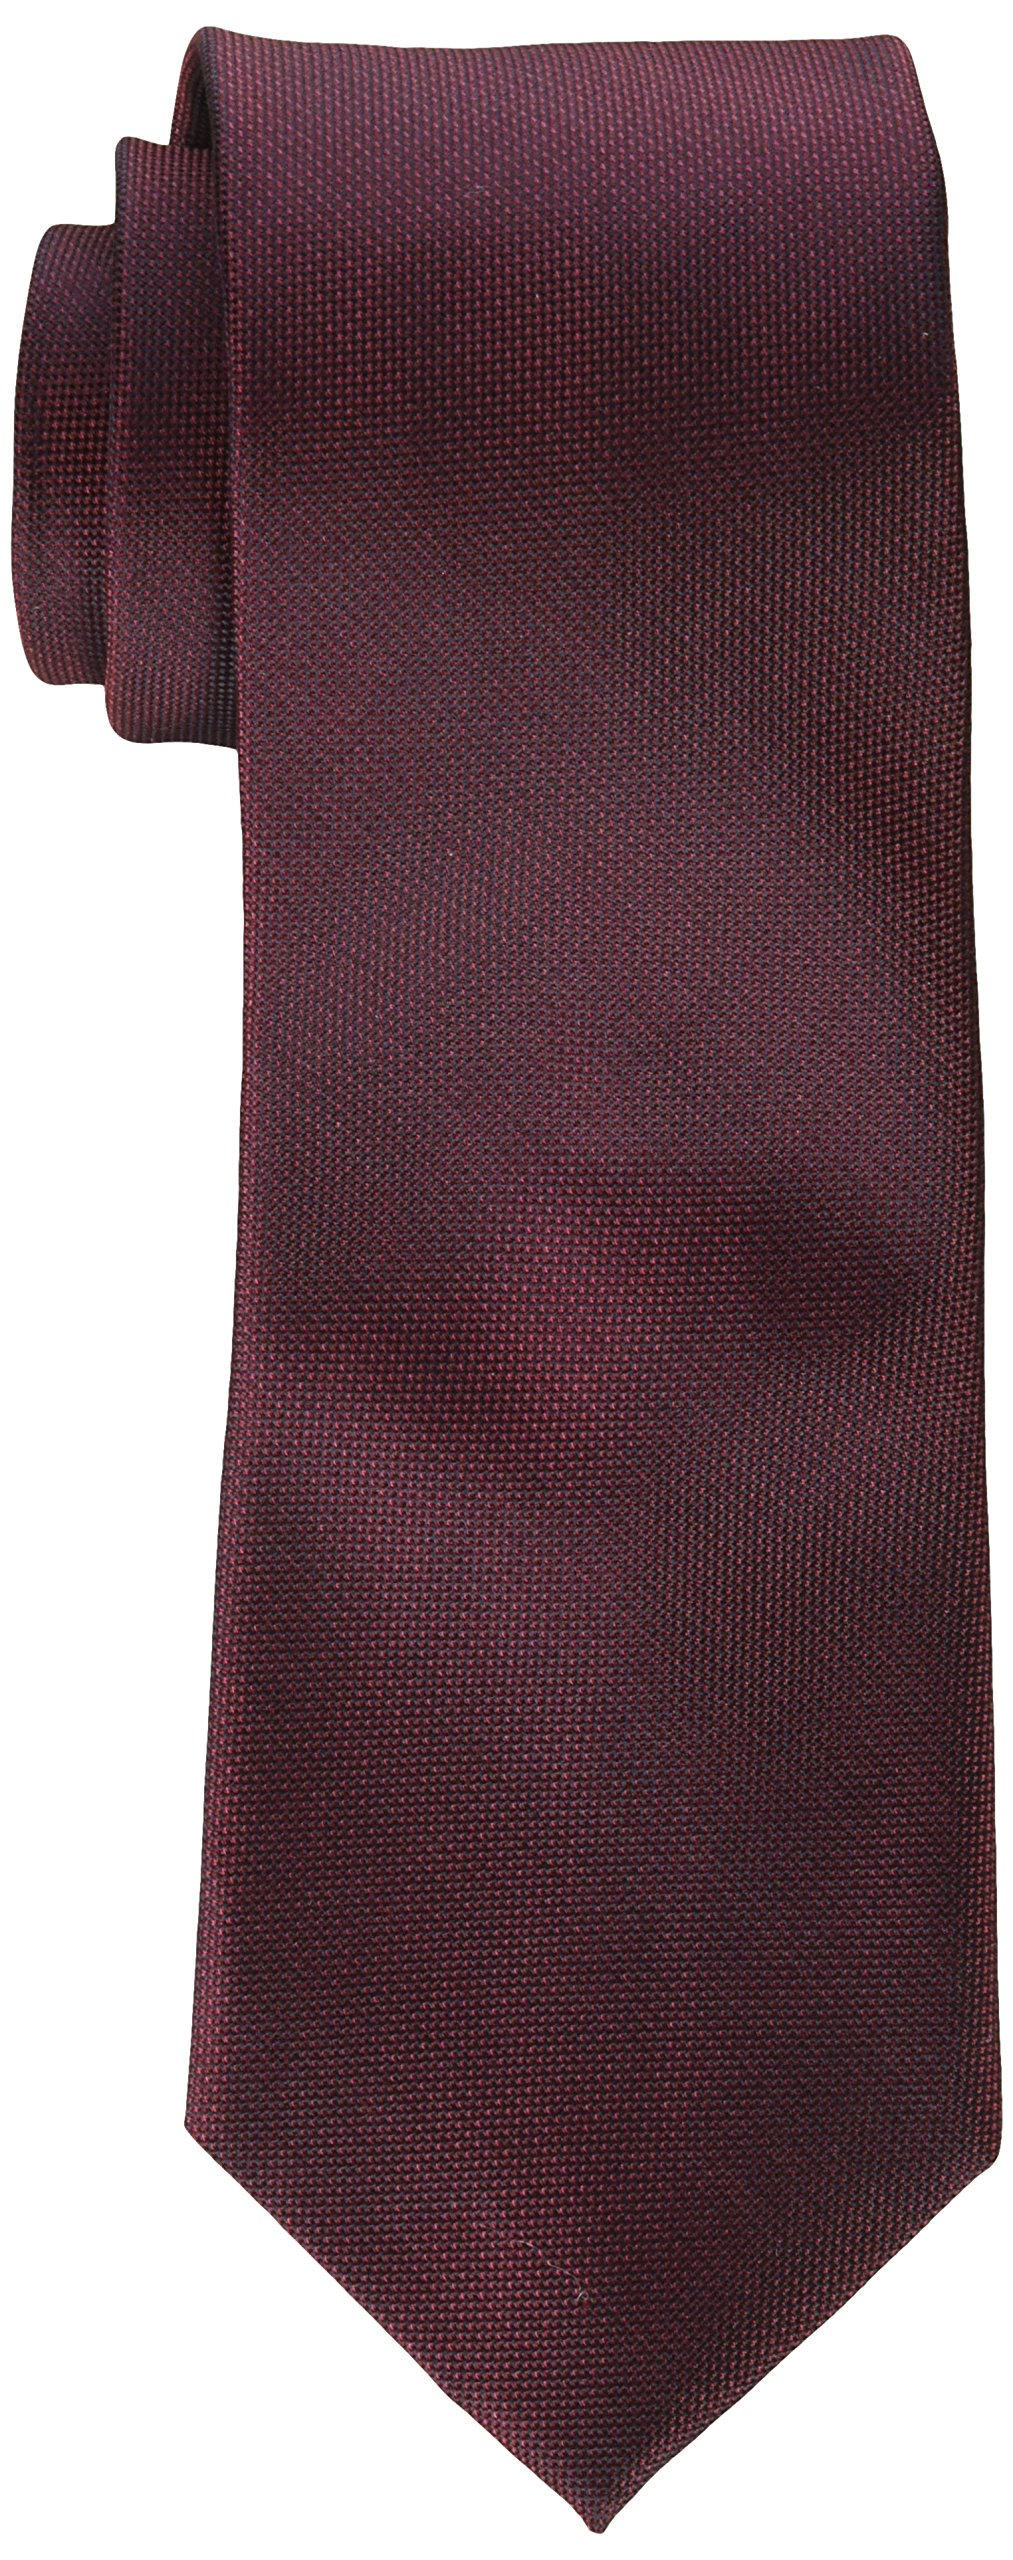 Calvin Klein Men's Silver Spun Solid Tie, Wine X-Long